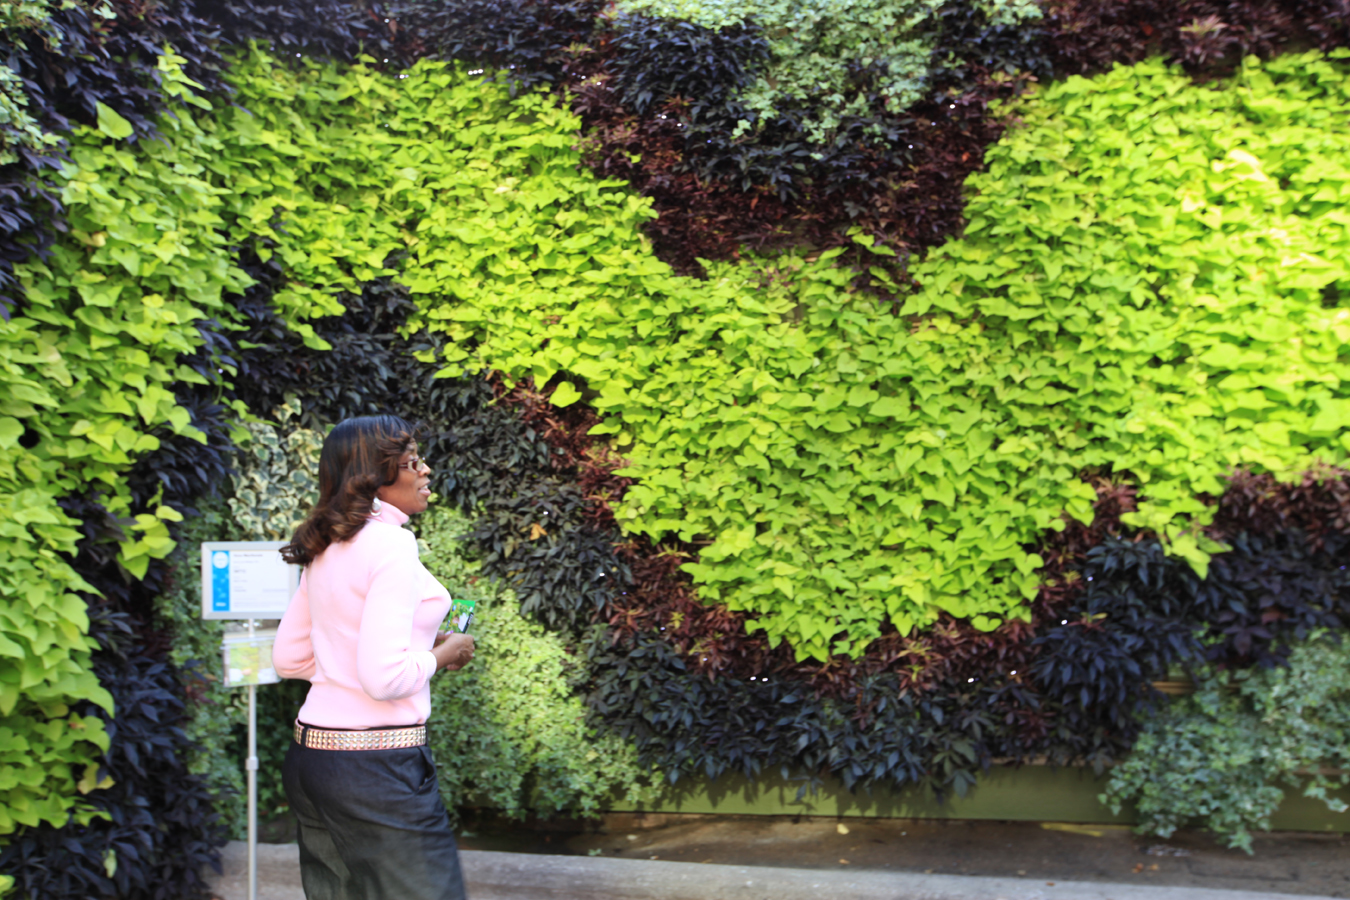 Pioneering an unprecedented revolutionary new art form - How to make a living wall ...